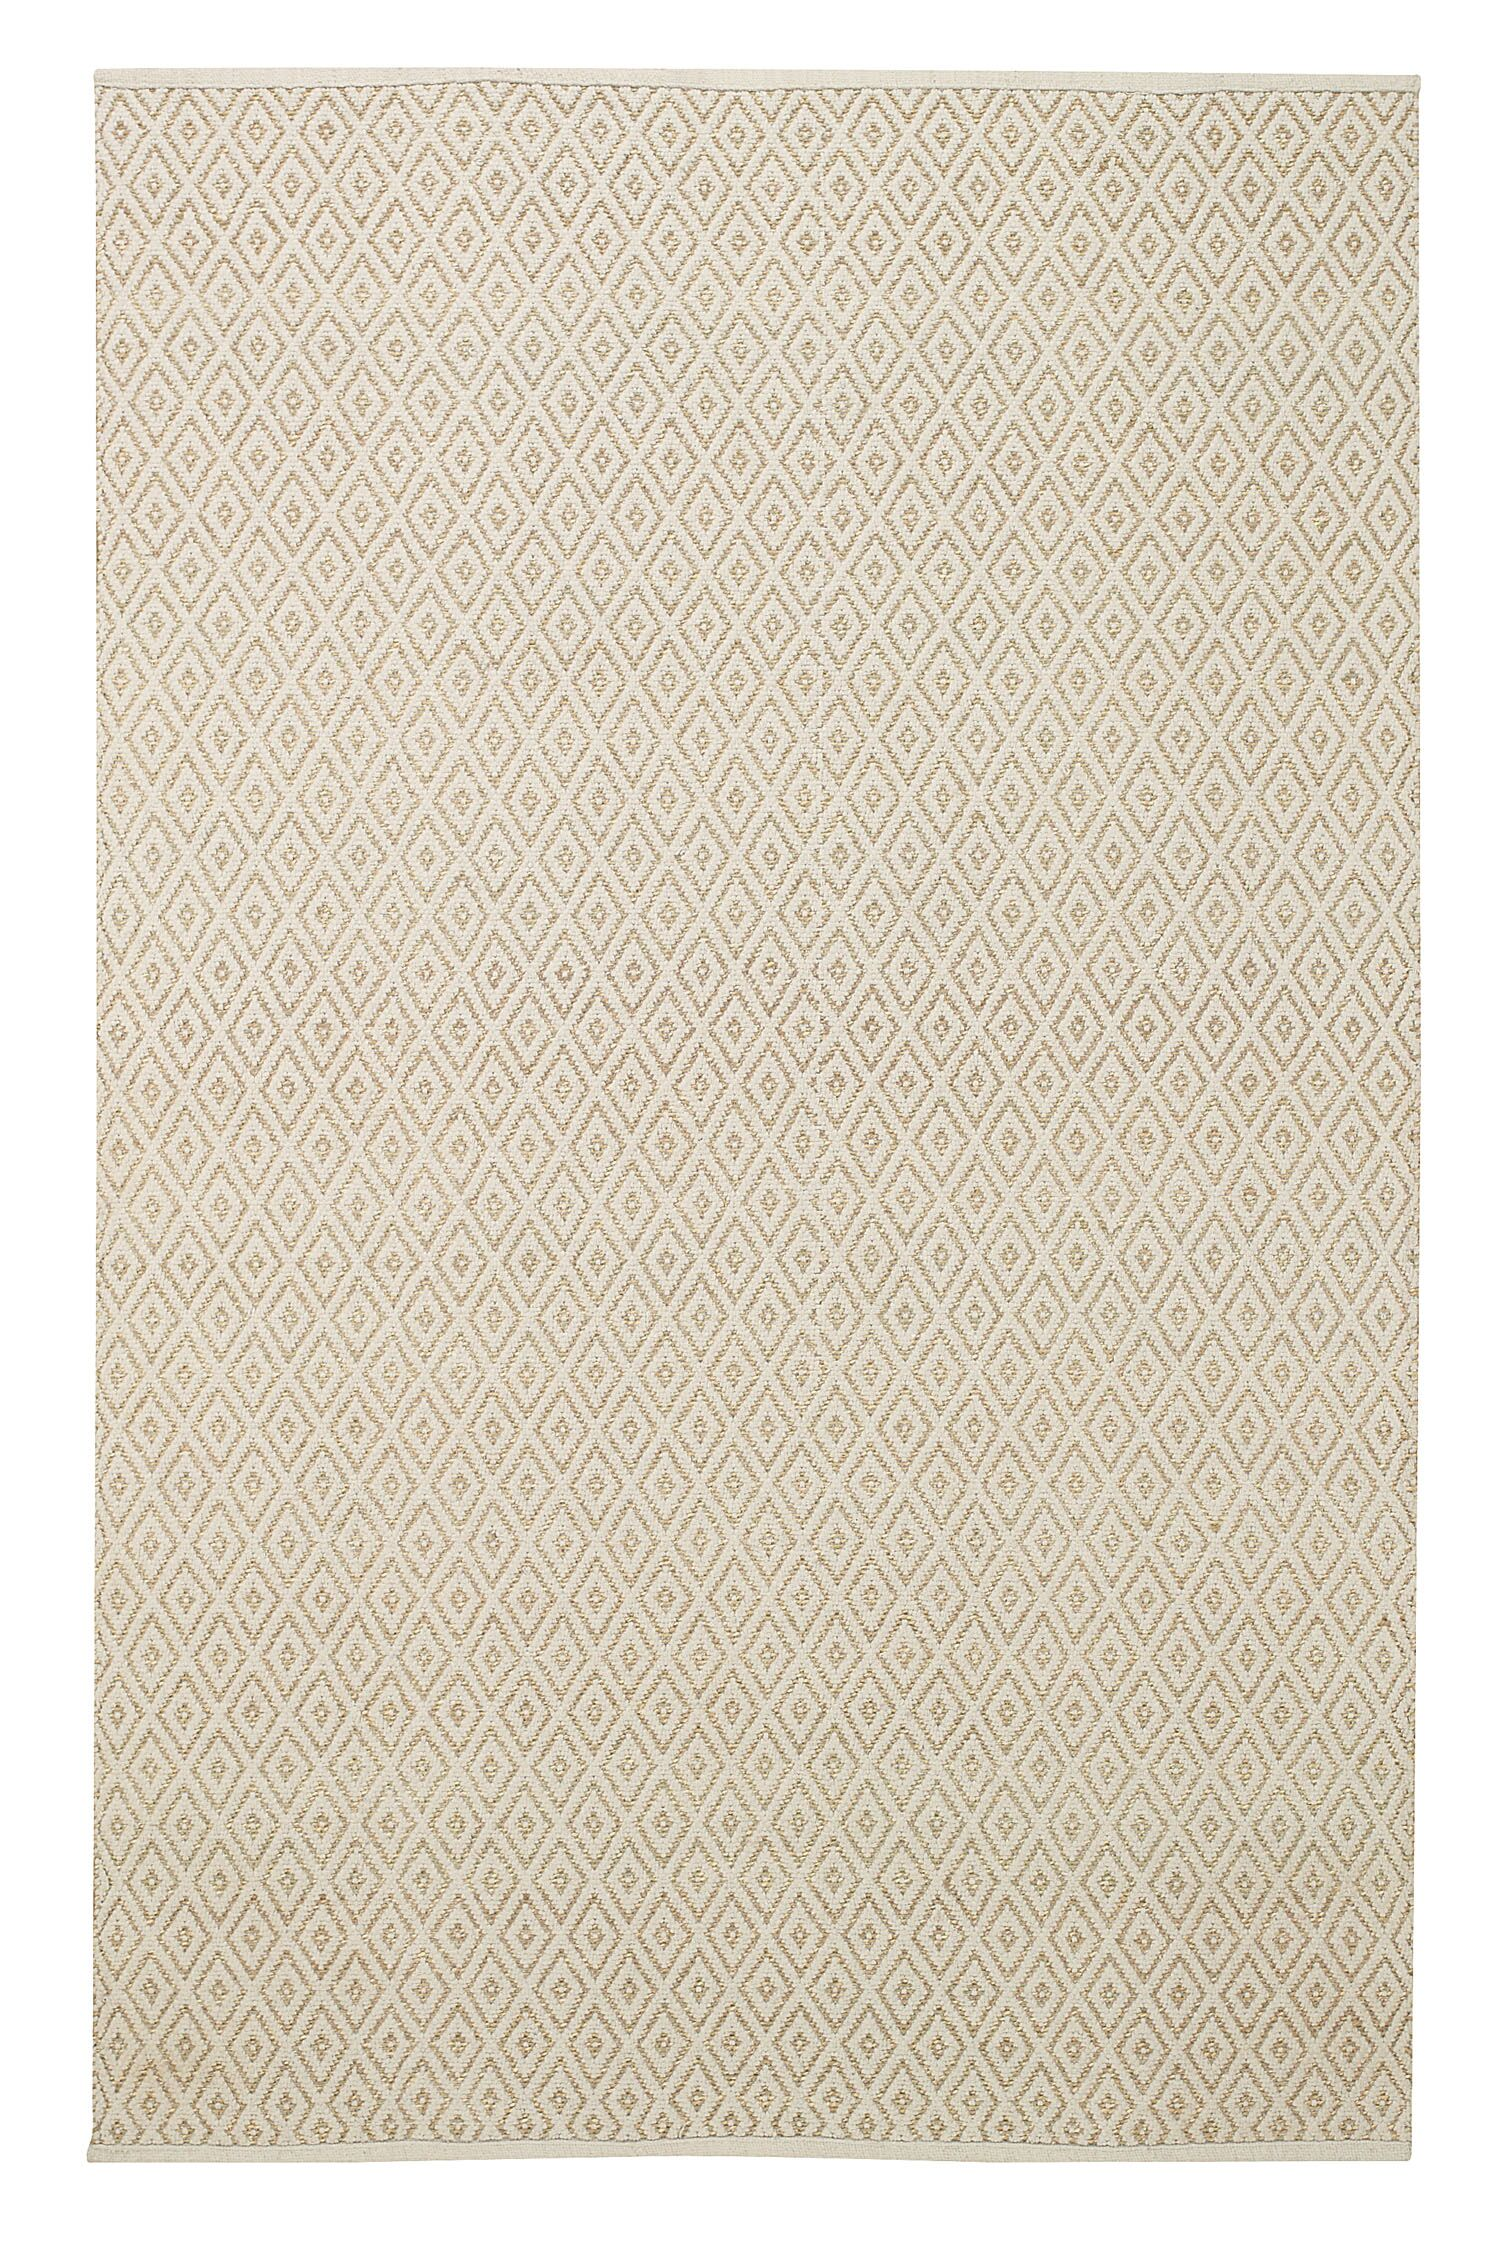 Blocher Natural Area Rug Rug Size: 8' x 10'